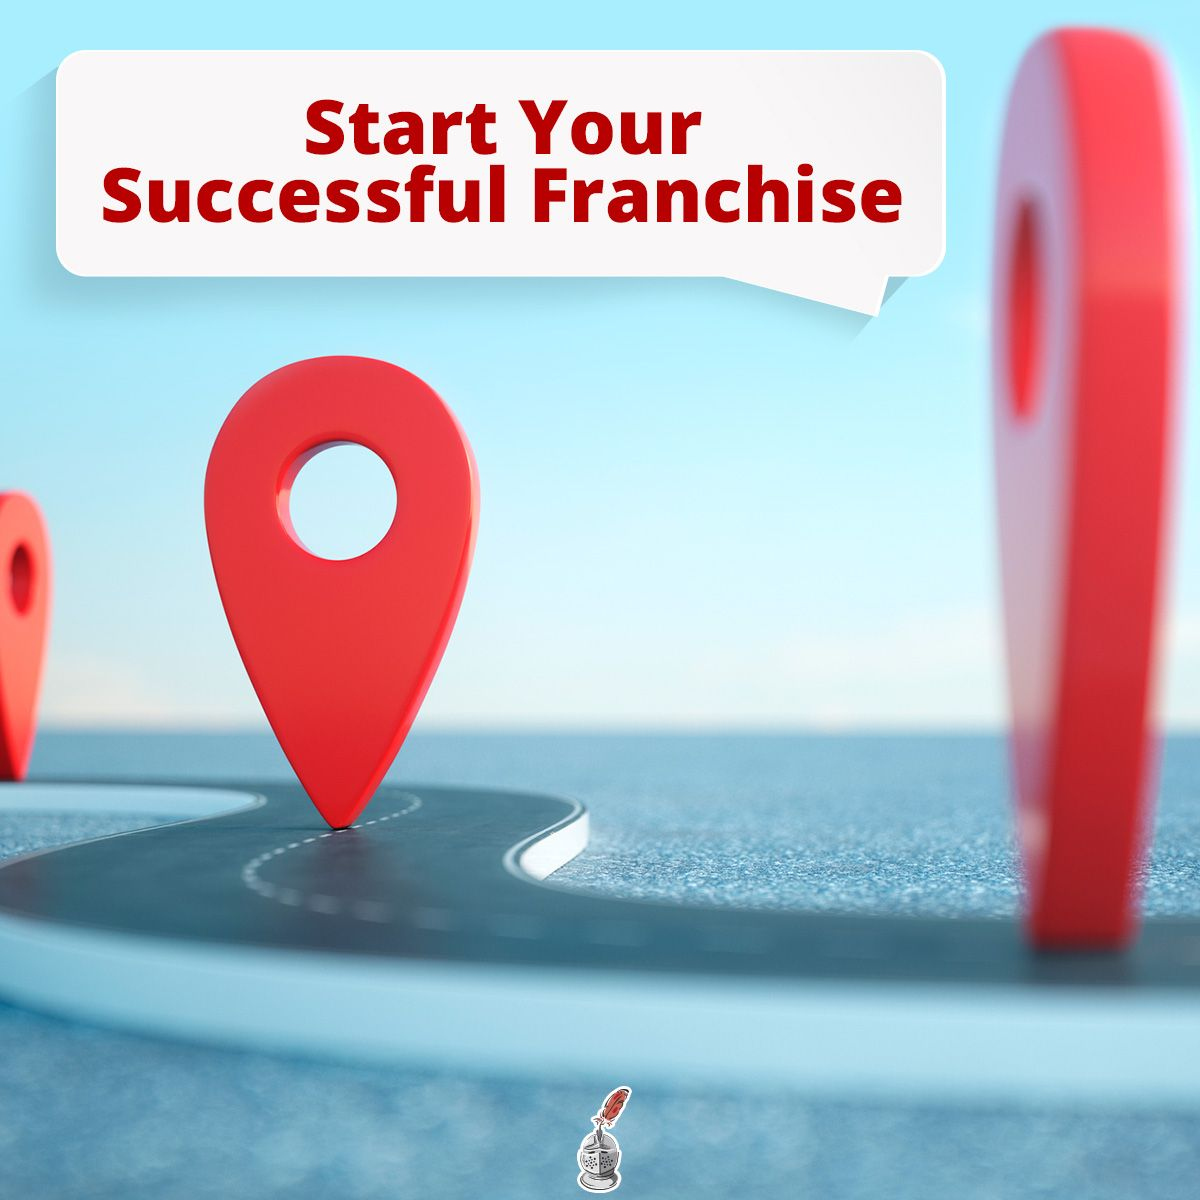 Start Your Successful Franchise